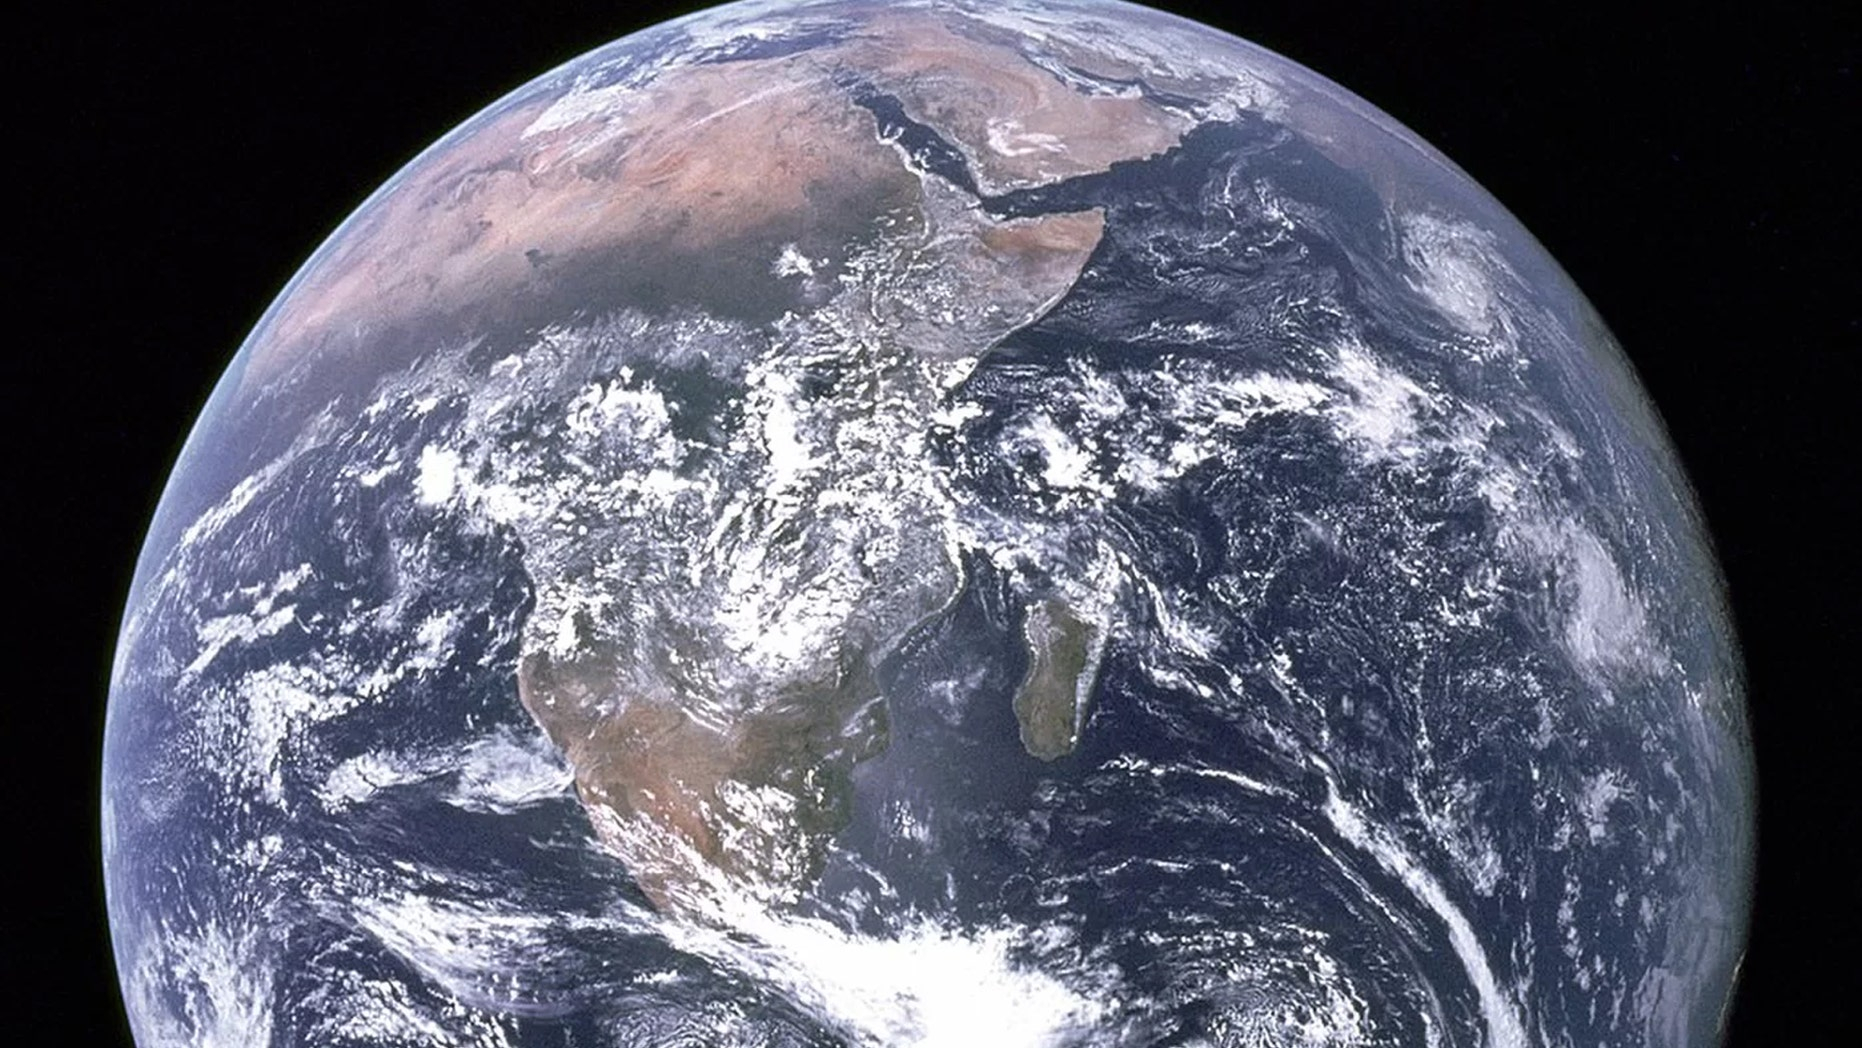 Plate tectonics may have helped facilitate the development of life on Earth. Credit: NASA